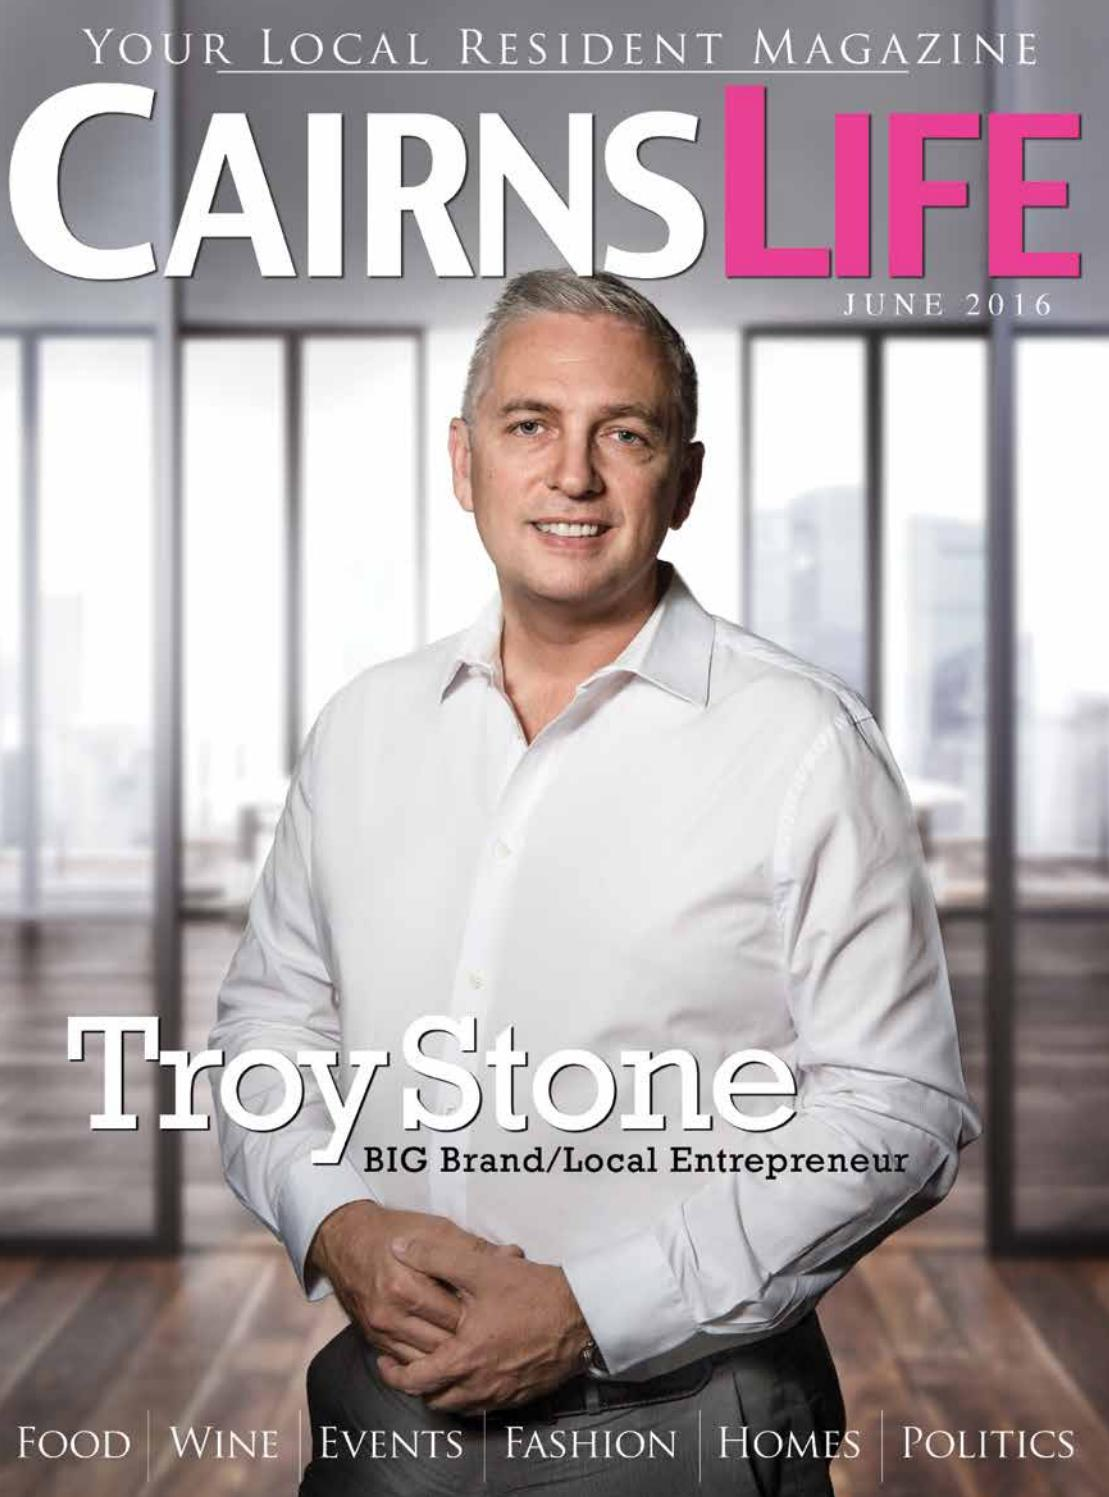 CairnsLife Magazine June 2016 by CityLife